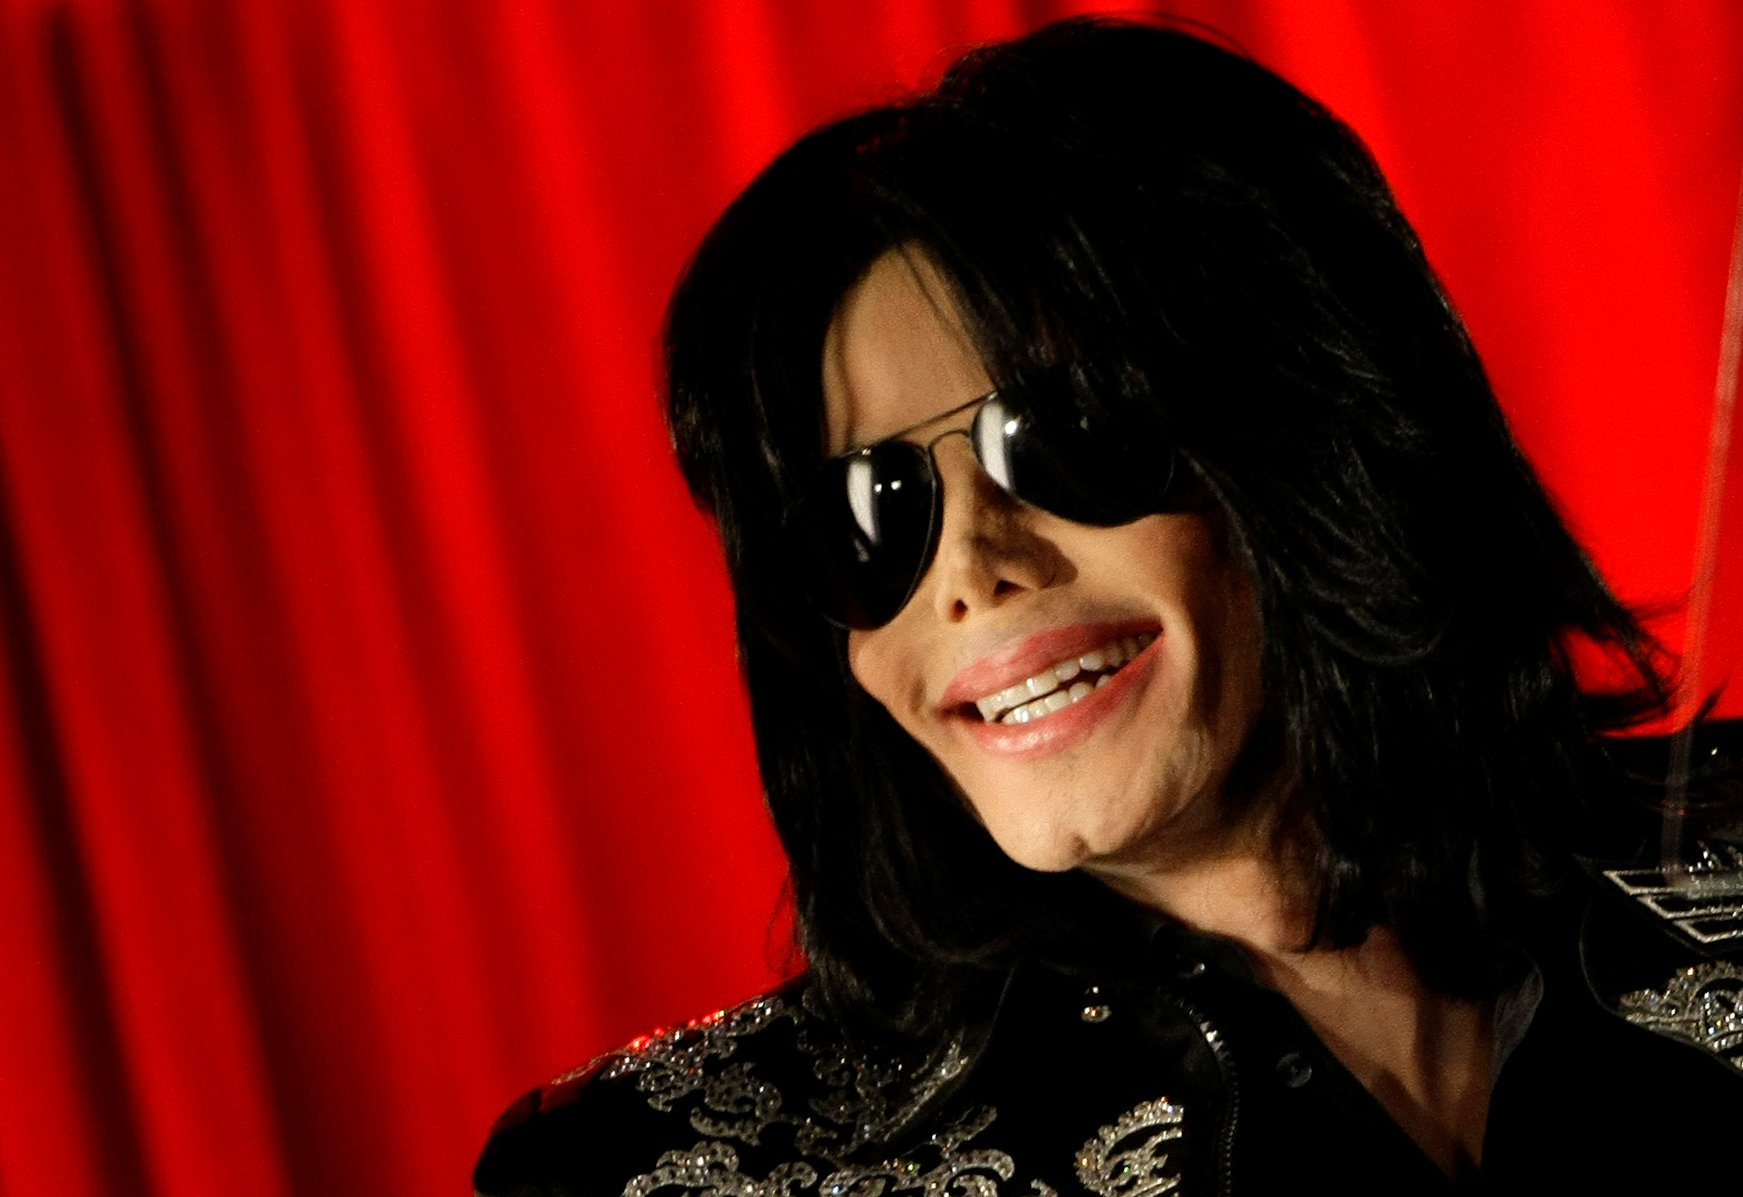 I don't care if you stop listening to Michael Jackson, just start listening to victims of abuse